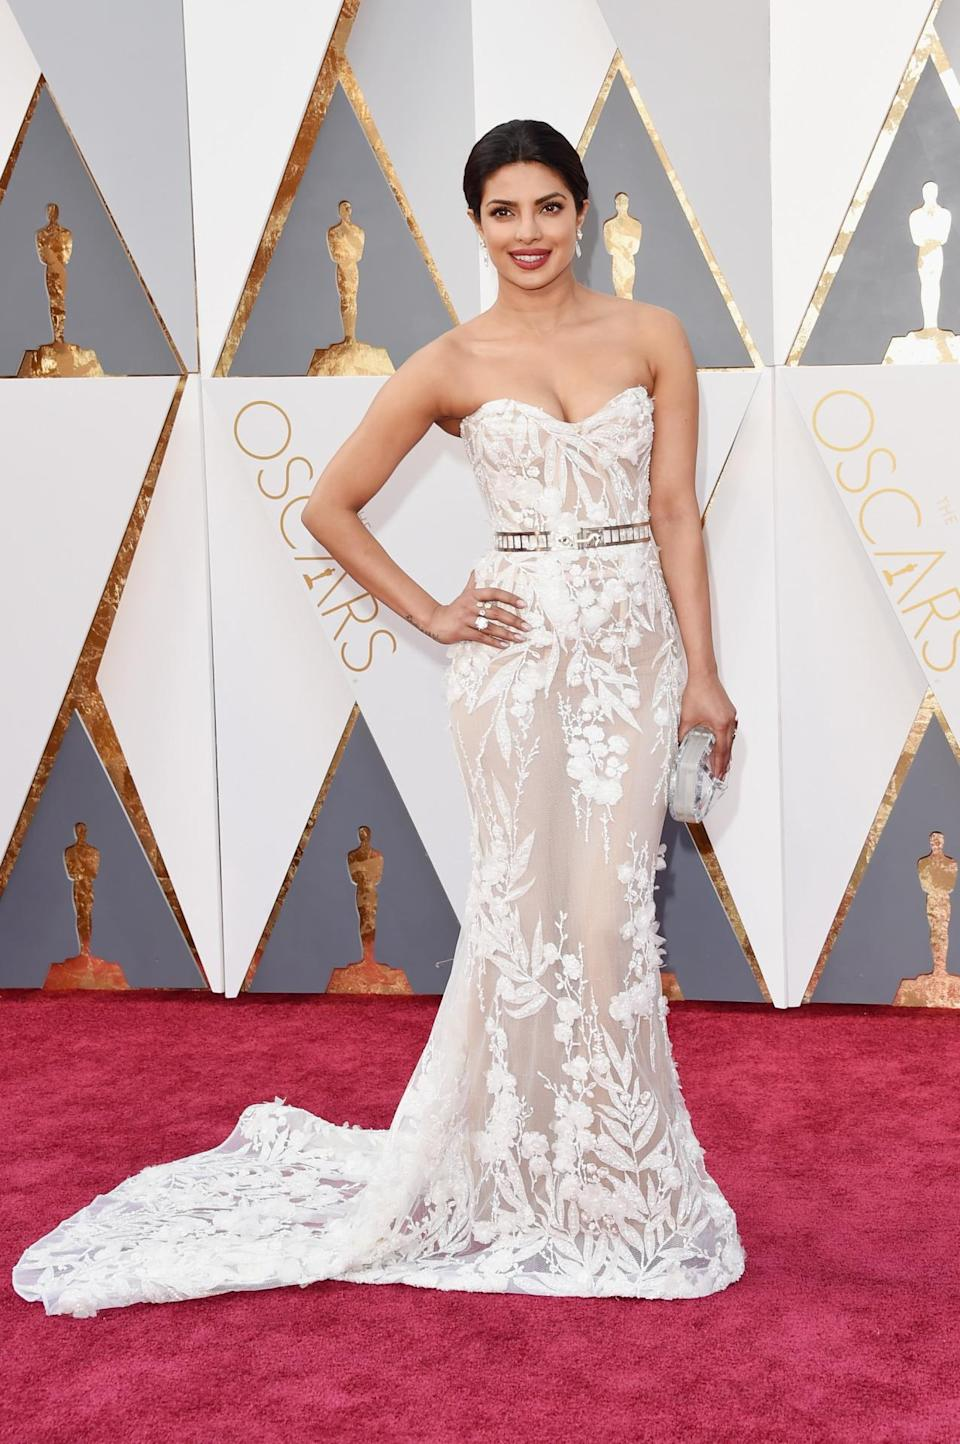 <p>Priyanka Chopra, the star of ABC's <i>Quantico, </i>went for a princess look in Zuhair Murad for her first time at the Oscars. <i>(Photo: Getty Images)</i></p>